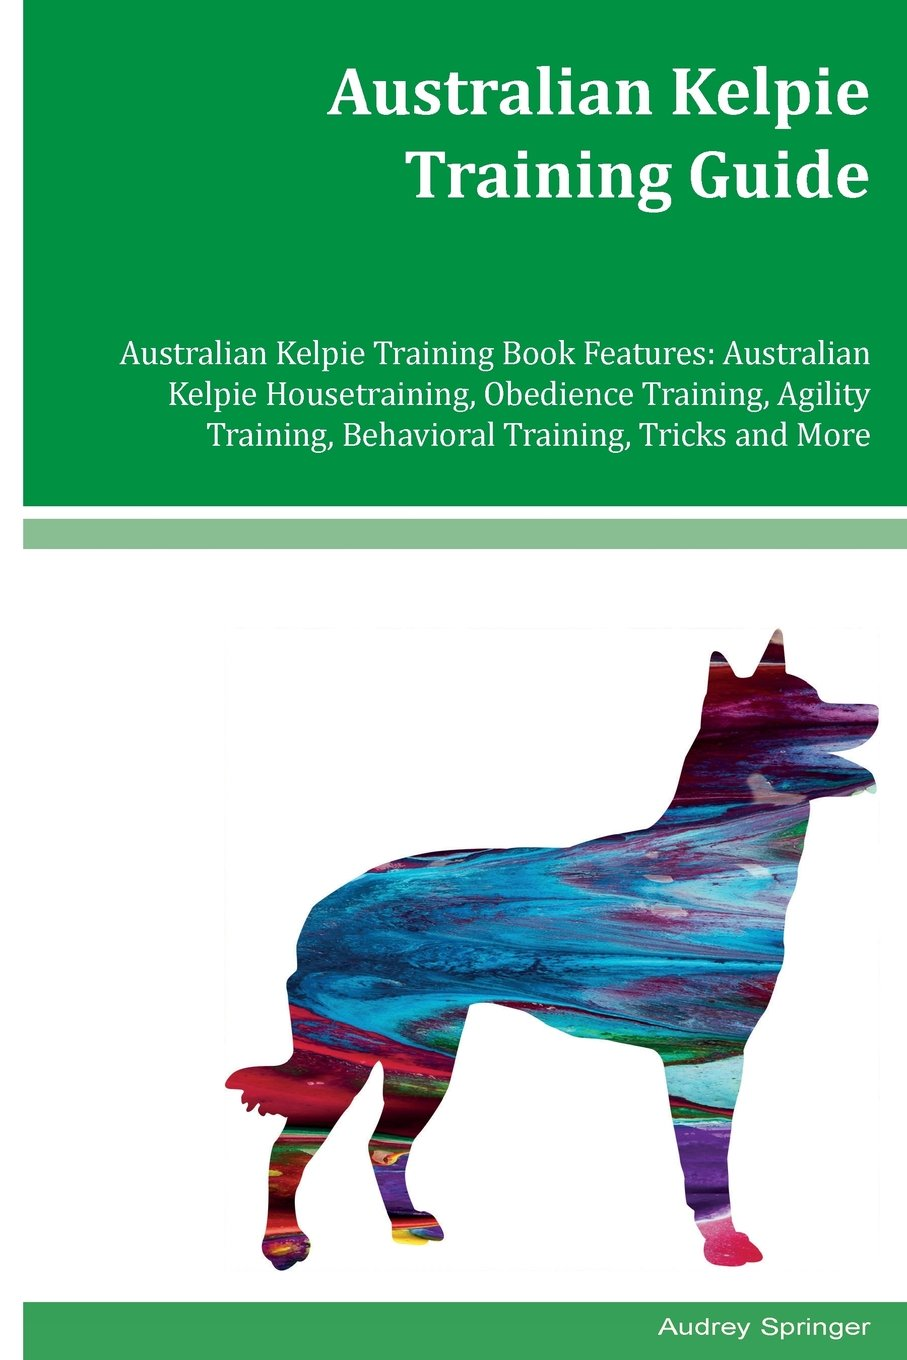 Australian Kelpie Training Guide Australian Kelpie Training Book Features: Australian Kelpie Housetraining, Obedience Training, Agility Training, Behavioral Training, Tricks and More